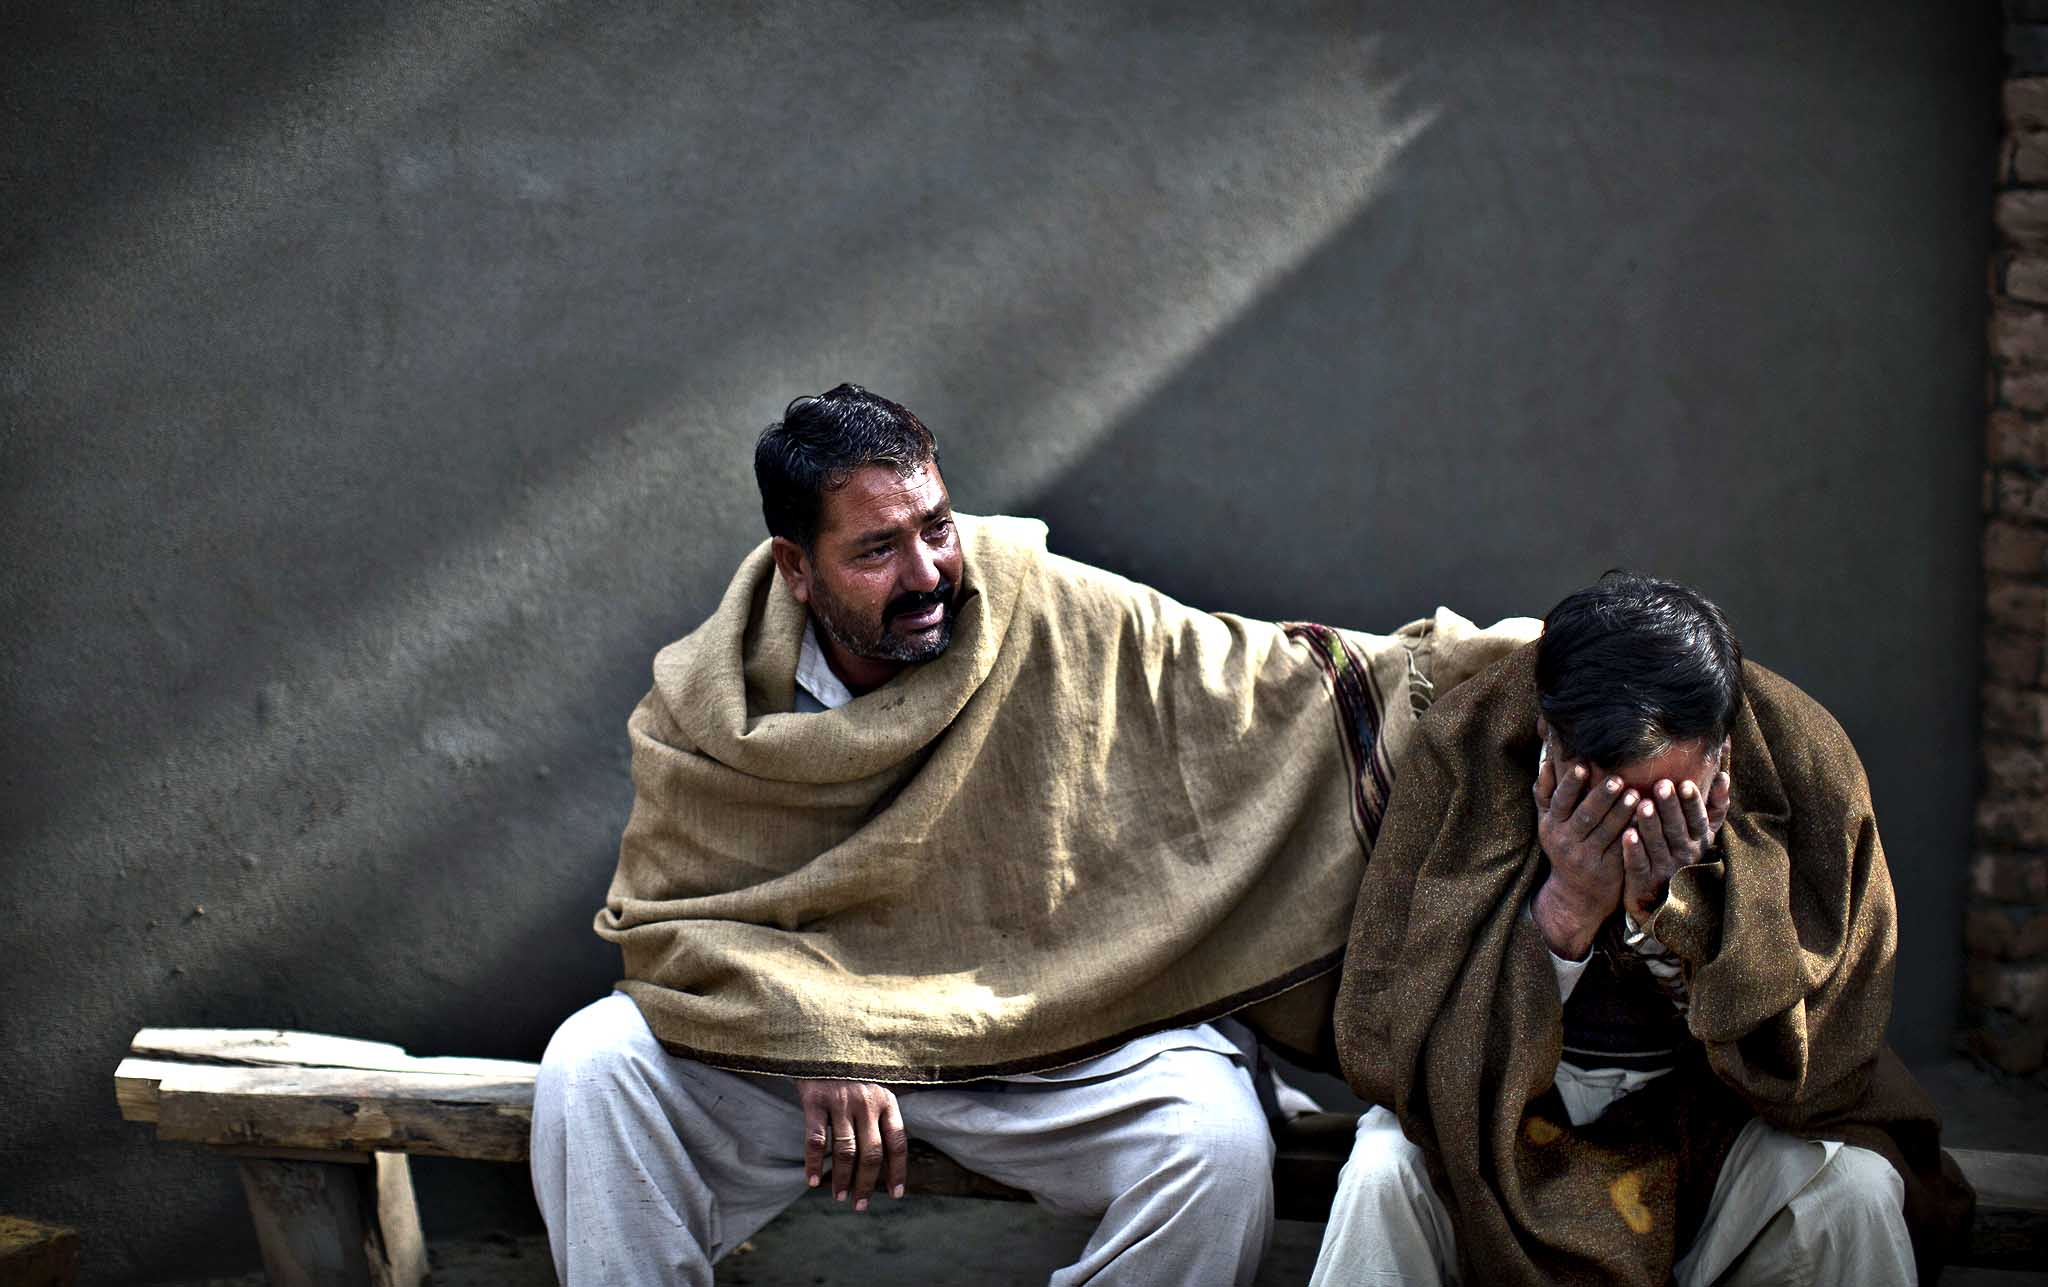 Uncles of Pakistani student, Zoubair Latif, 17, who was killed in a suicide bombing, mourn his death while waiting at a hospital to take the body for burial, in Rawalpindi, Pakistan, Monday, Jan. 20, 2014. A Taliban suicide bomber blew himself up not far from Pakistan s military headquarters Monday, killing more than a dozen of people a day after a militants bombing inside an army compound in the northwest of the country, officials and militants said.